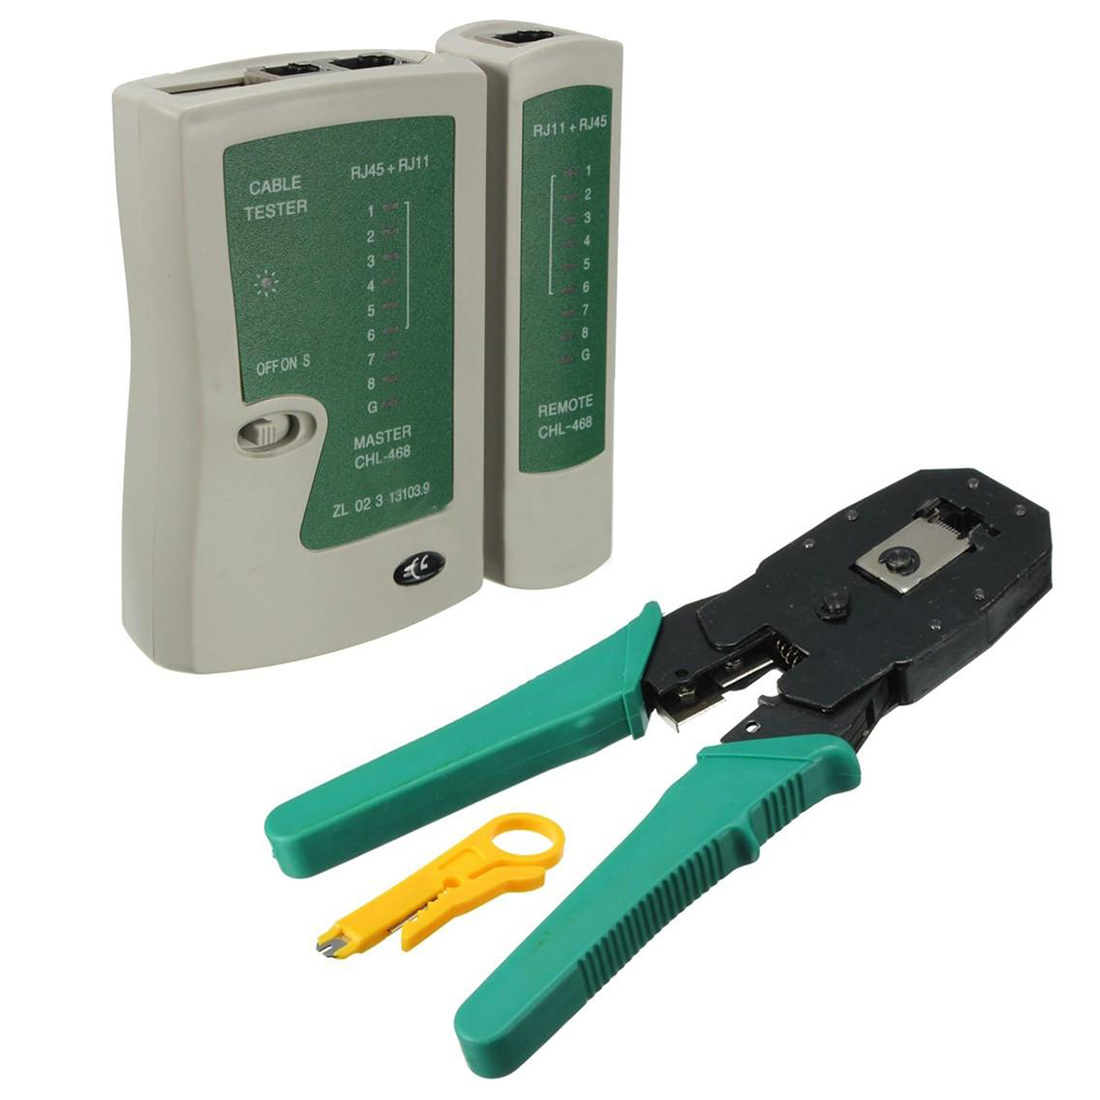 Network-Cable-Tester Crimper Herramientas Rj11 Professional Lan Rj45 with PC